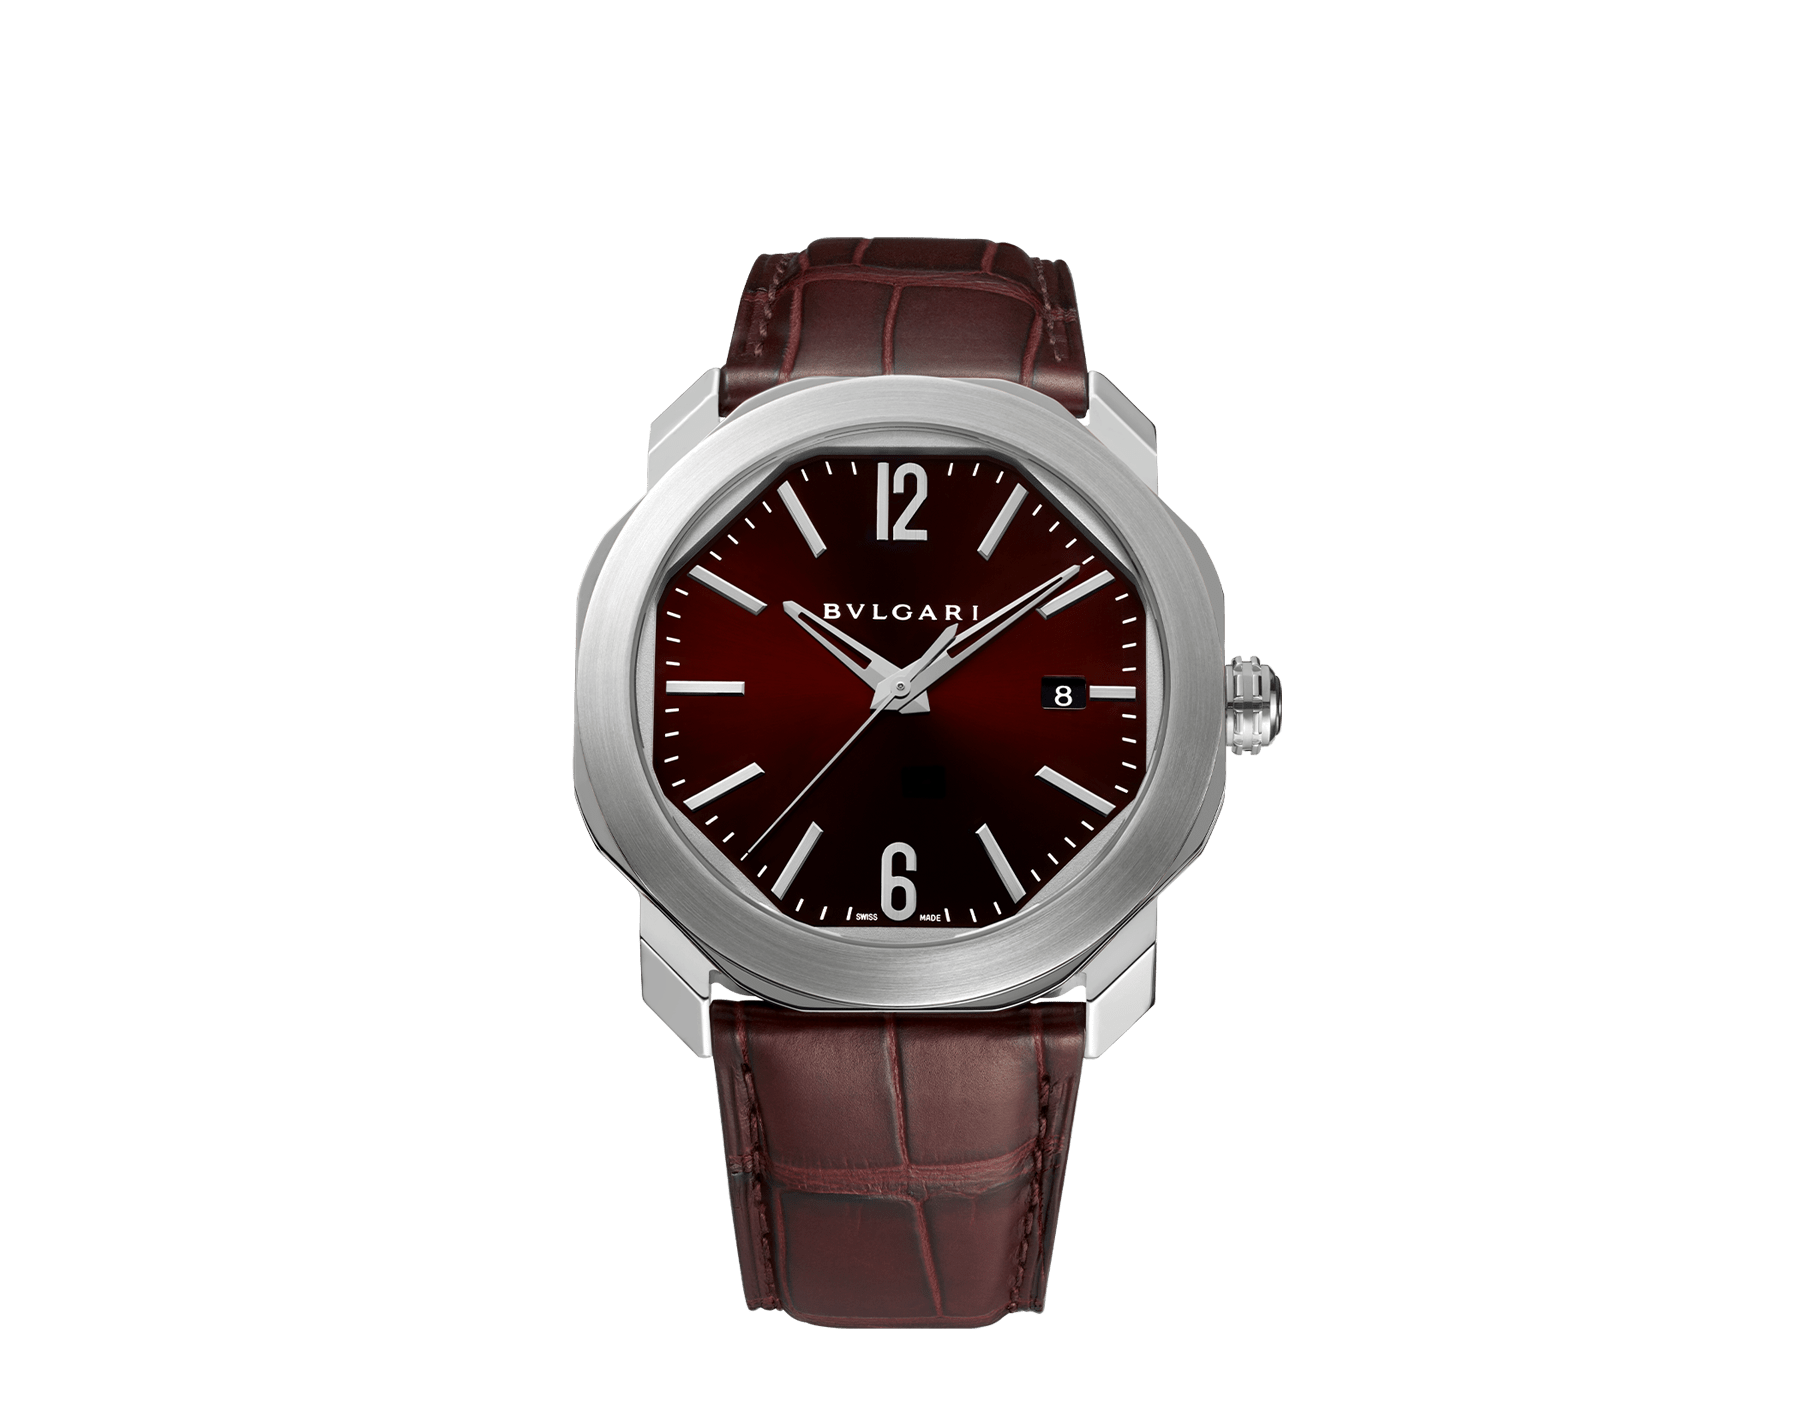 Octo Roma watch with mechanical manufacture movement, automatic winding, stainless steel case, dark brown lacquered dial and brown alligator bracelet. 102705 image 1